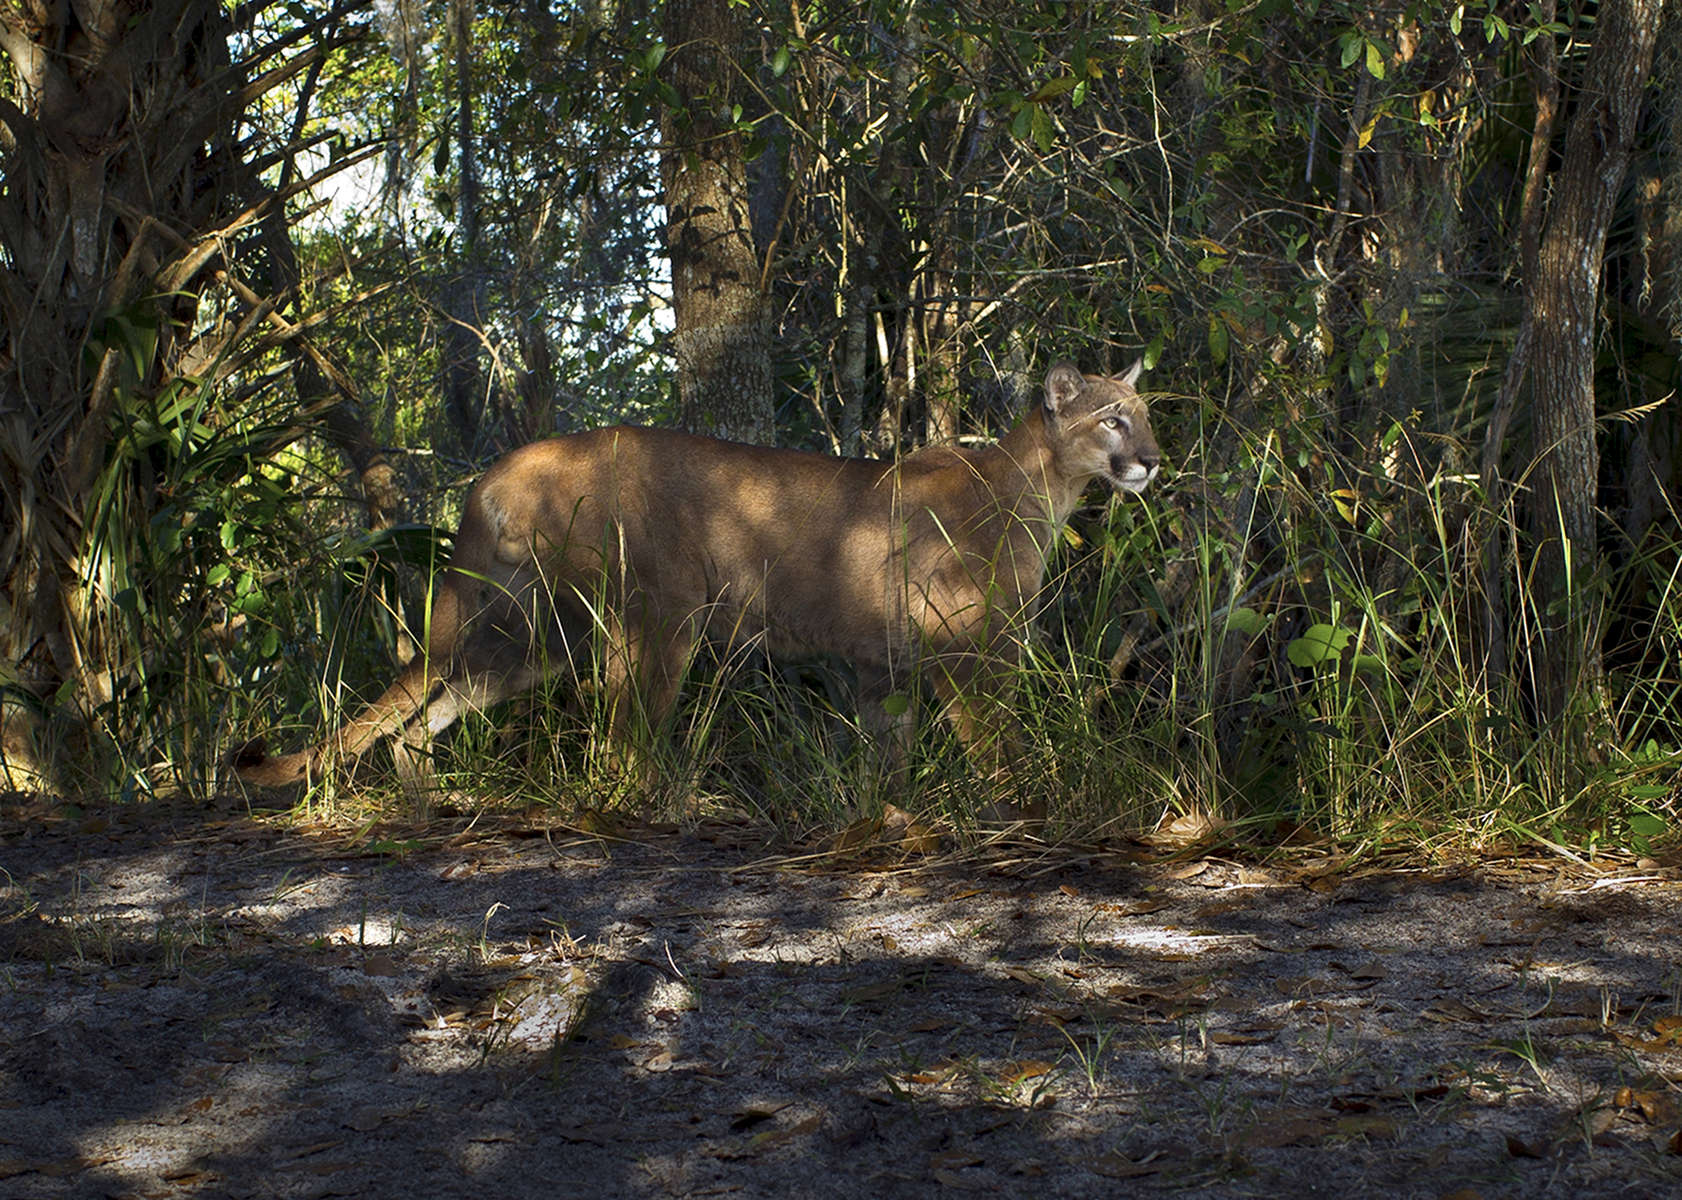 Panther-in-the-grass_8875